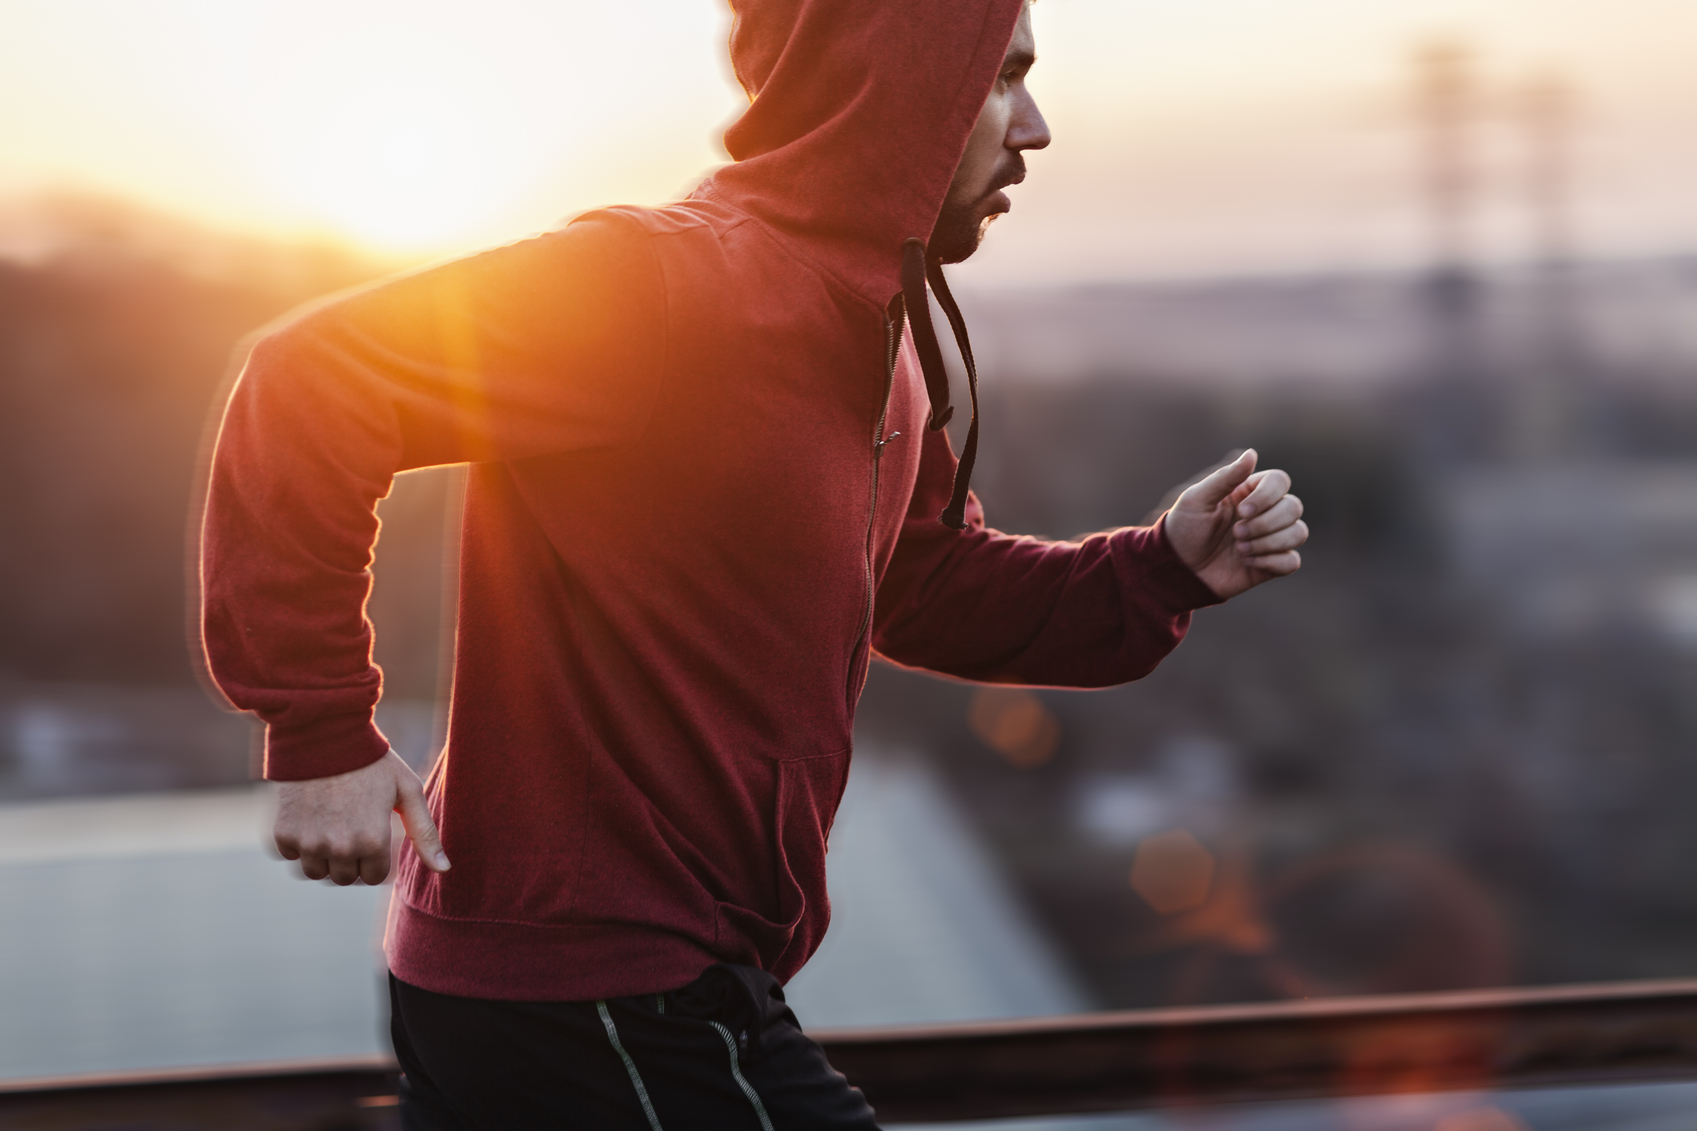 A picture of a man running and exercising beneath a clear sky, along a steal fence. He is wearing a red sweater with his hoodie pulled up and black shorts. In the distance below is some buildings and the sun is setting giving a nice warm light.